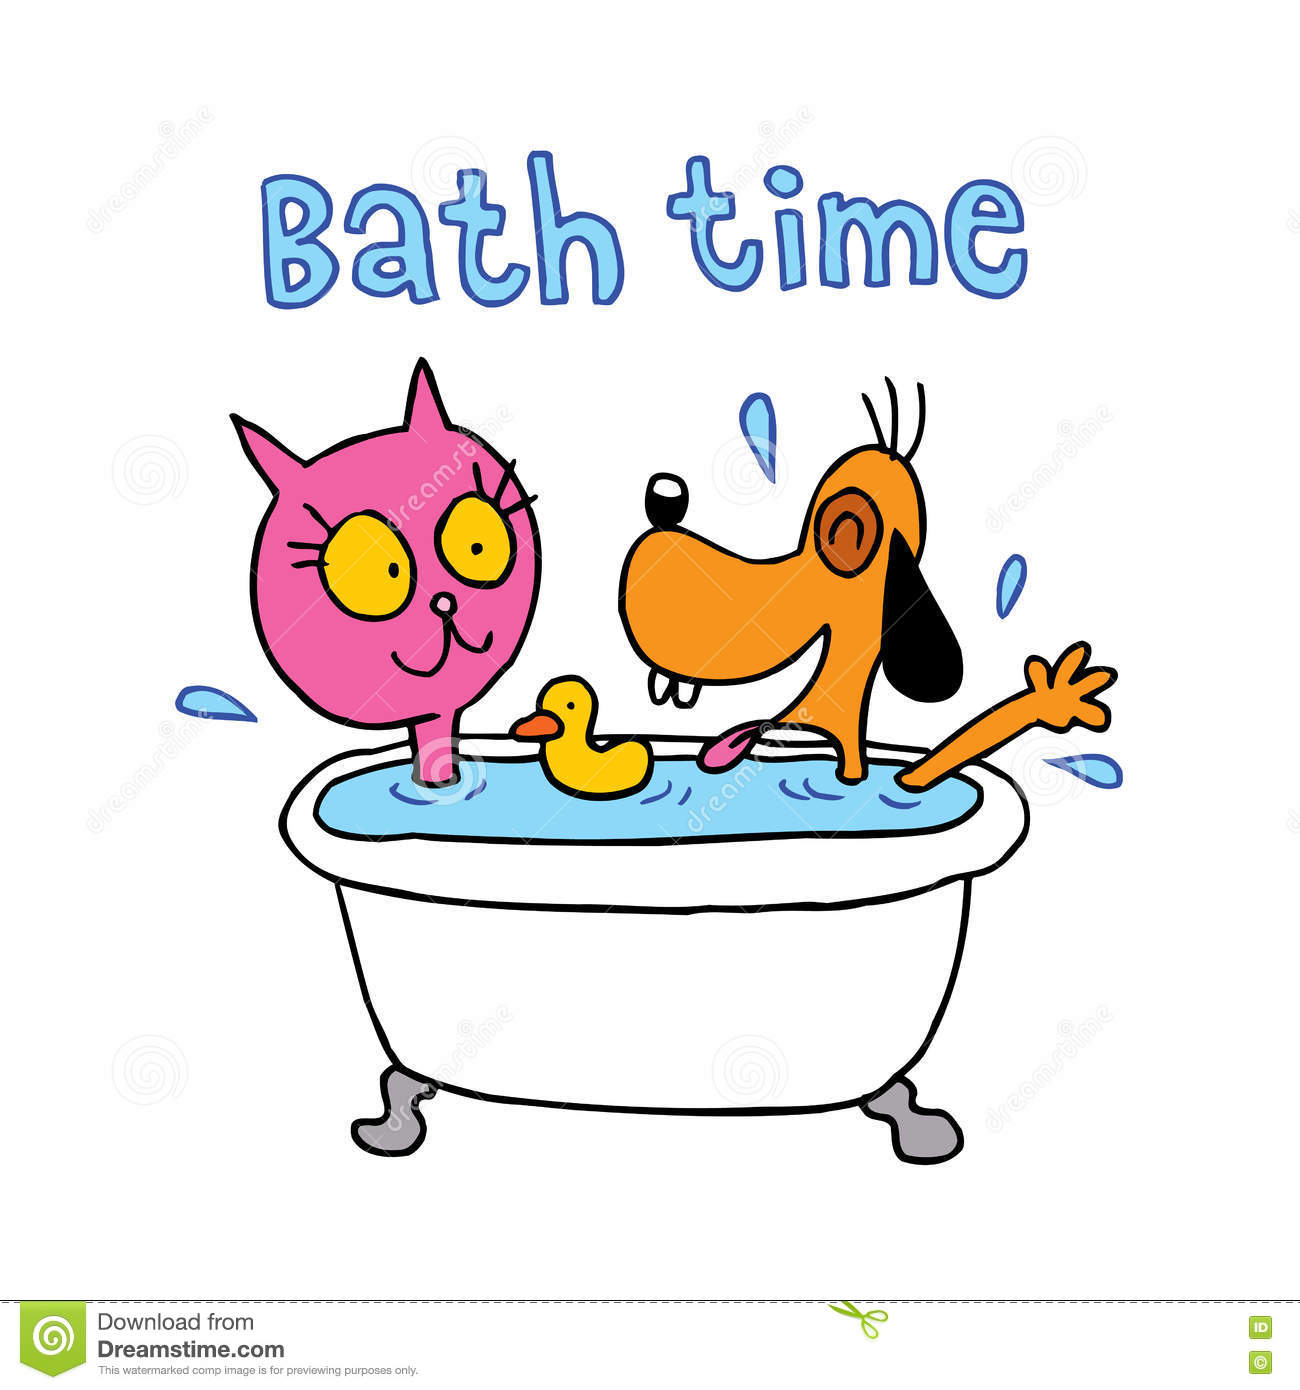 Bath time - cute cat and dog characters